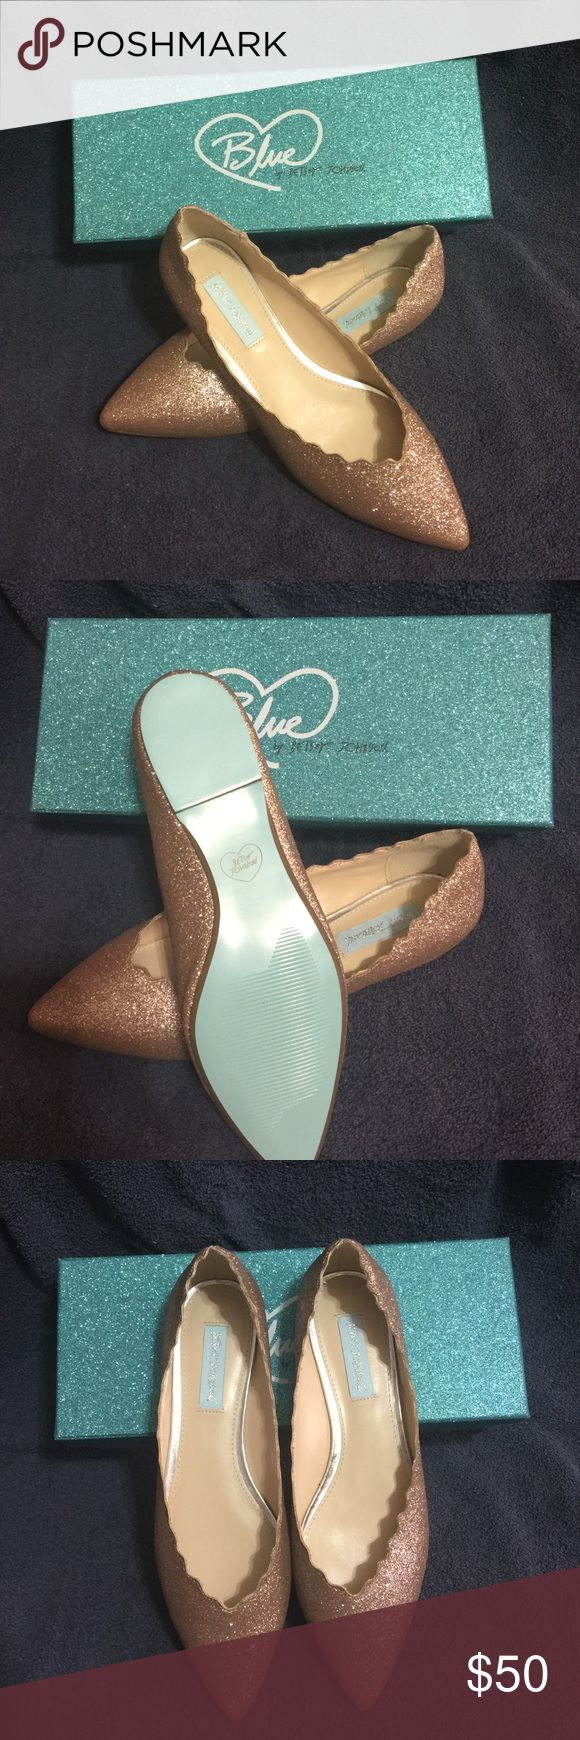 Blue by Betsey Johnson Wedding Flats Gorgeous rose gold wedding flats, size 9, brand new in box, never worn. Betsey Johnson Shoes Flats & Loafers